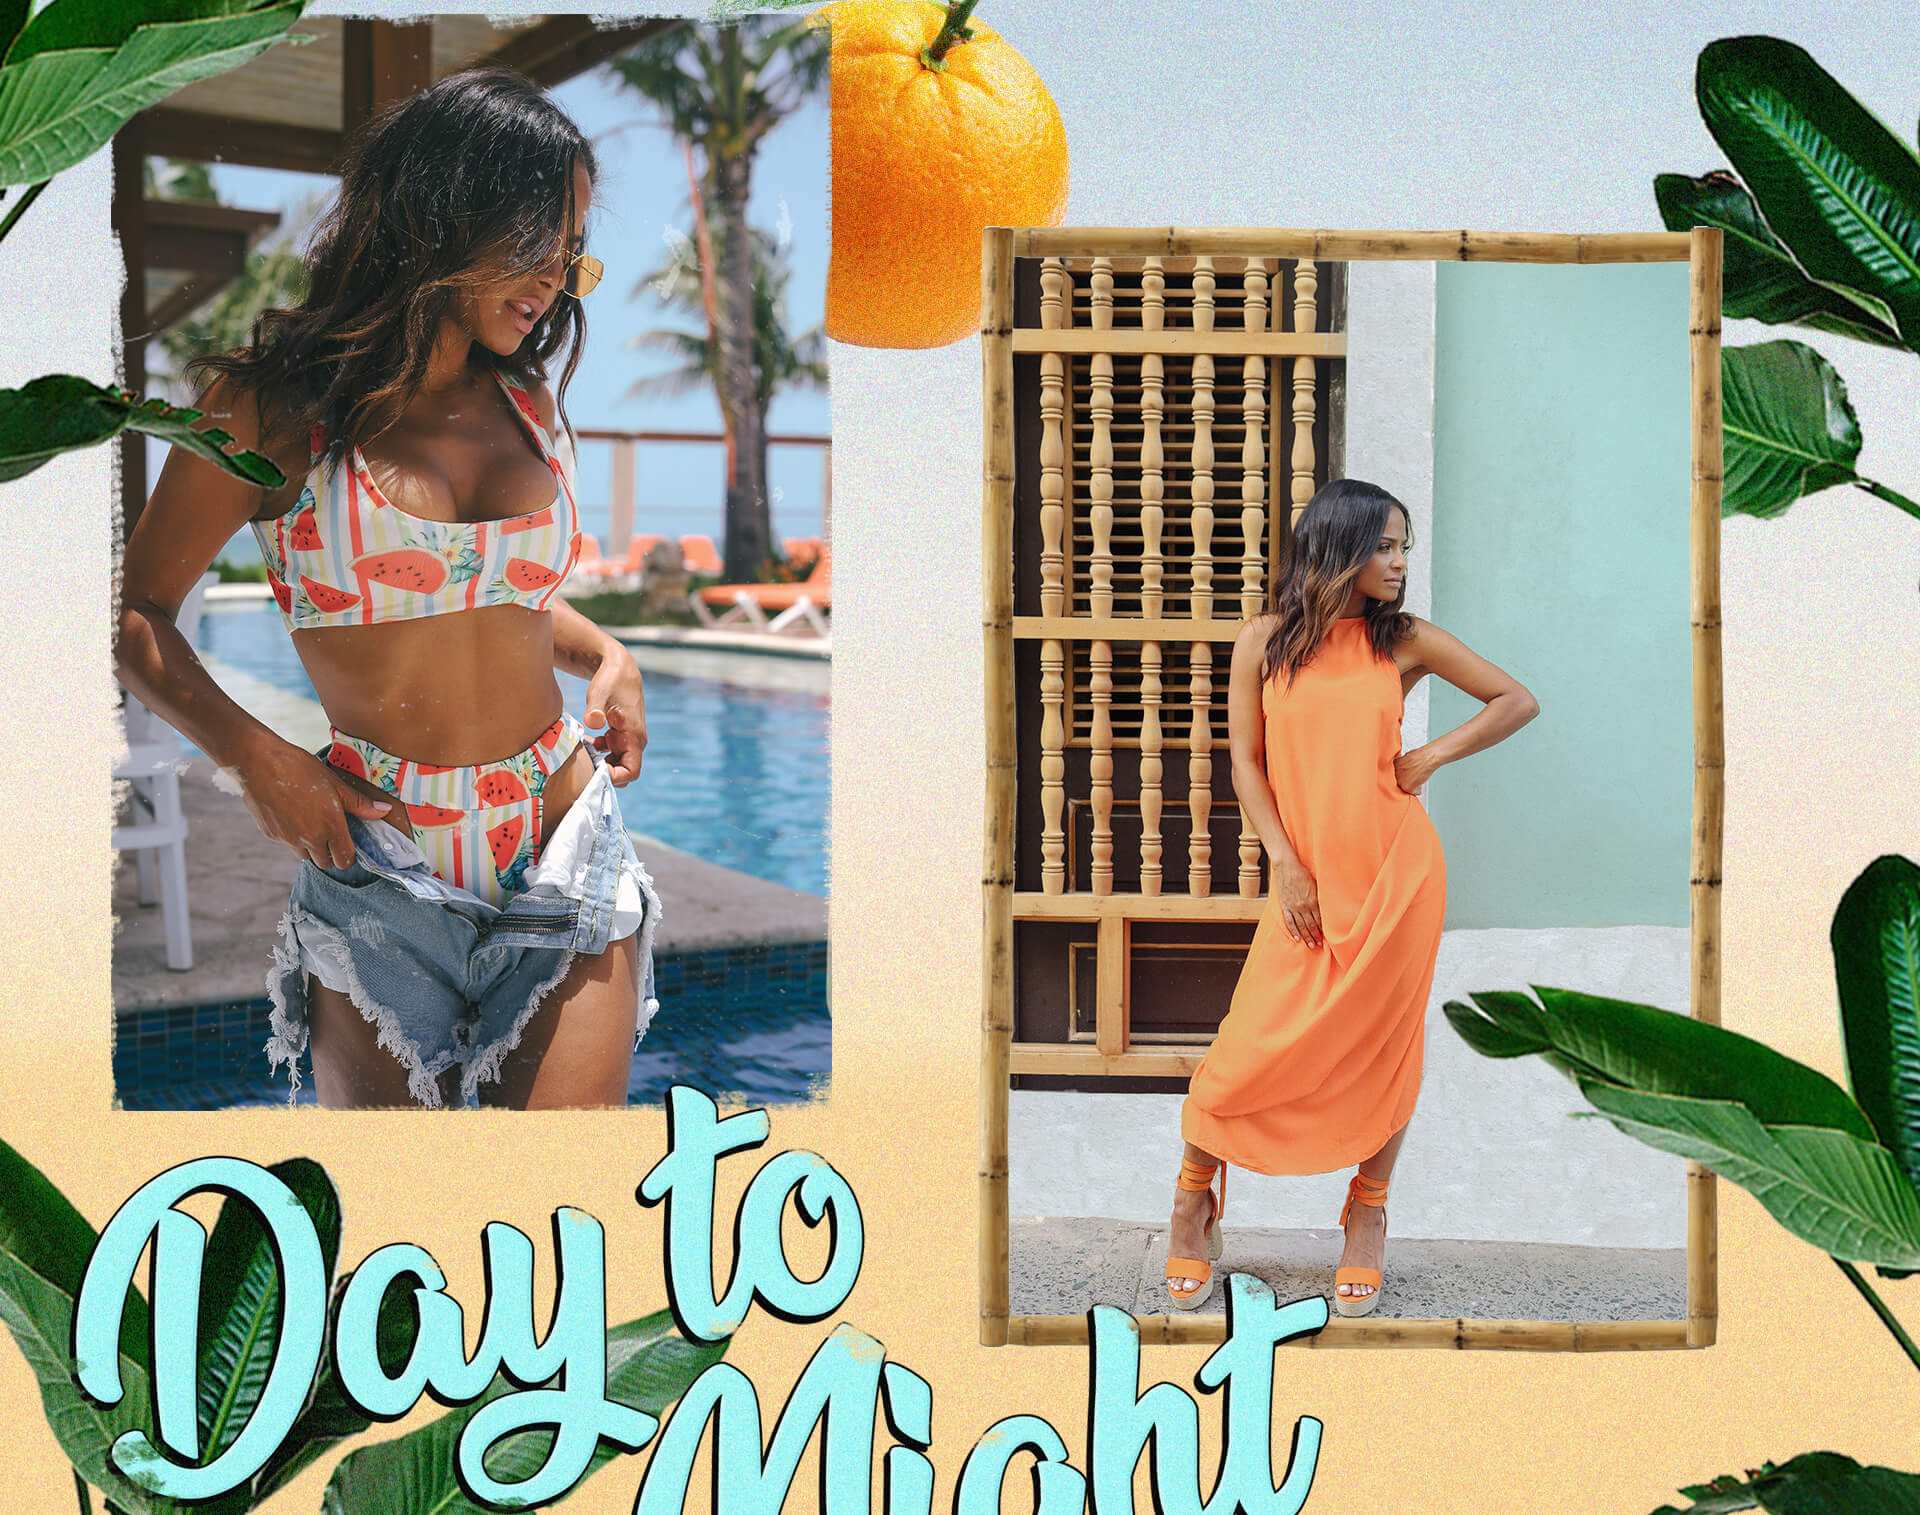 Christina Milian Shoot 4  White Watermelon Bikini Top, Watermelon Bikini Bottom & Orange Maxi Dress Desktop